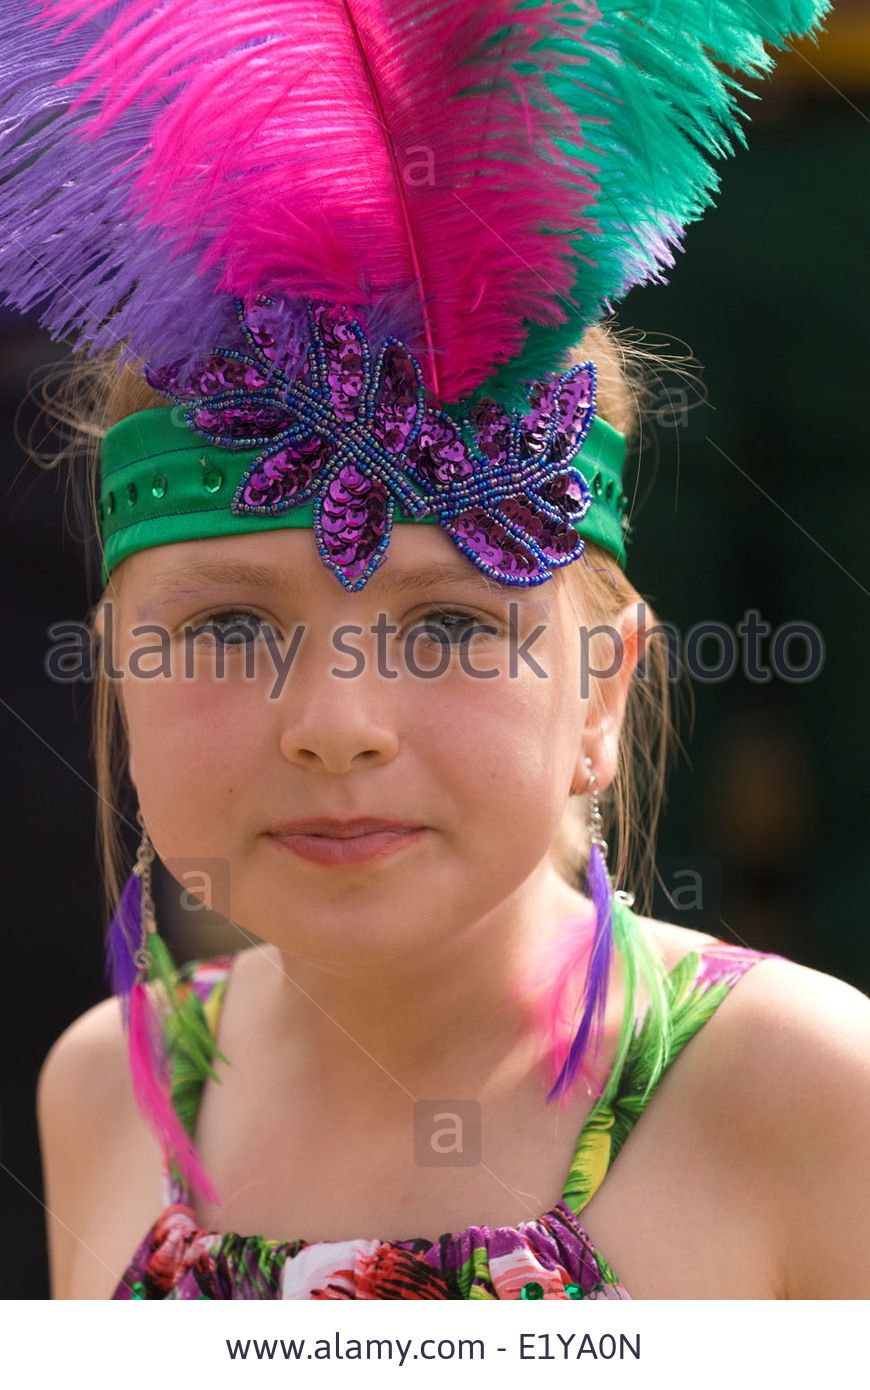 1e756f18e 8 year old girl wearing Brazilian/carnival costume at a village summer fair  which had a Brazil/World Cup 2014 theme... Stock Photo